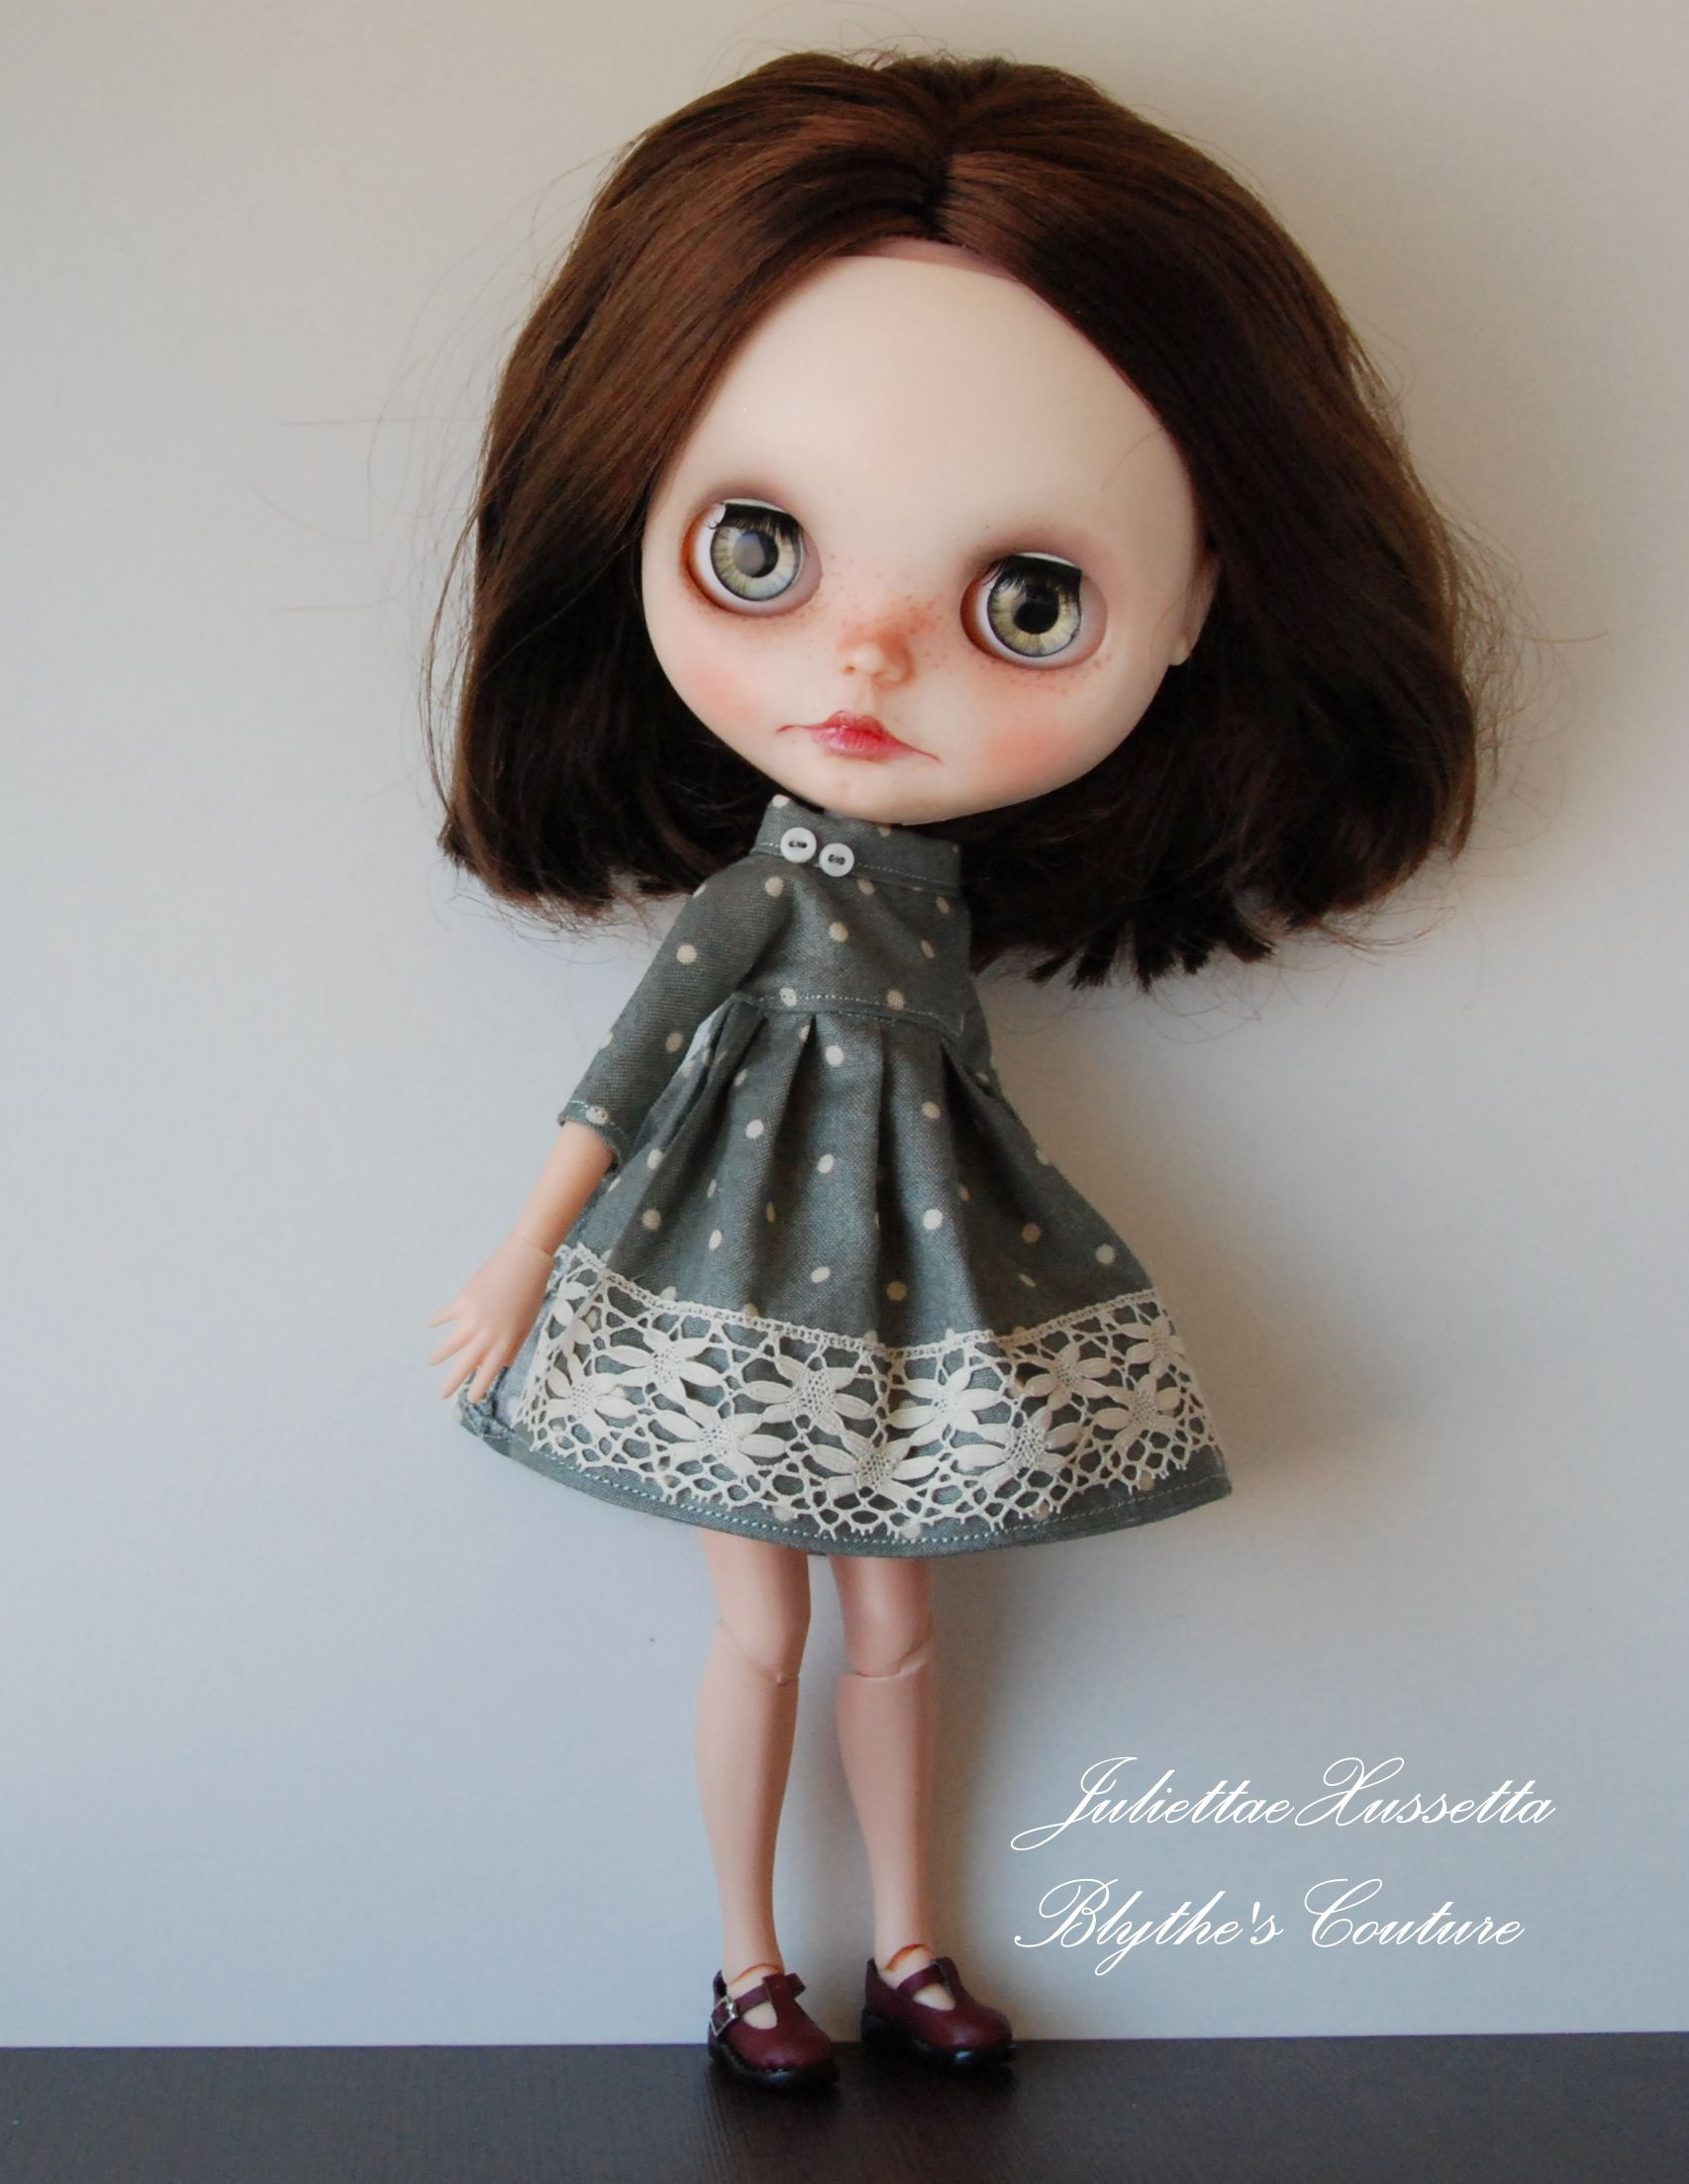 cotton+lace= adorable girl by JuliettaeXussetta